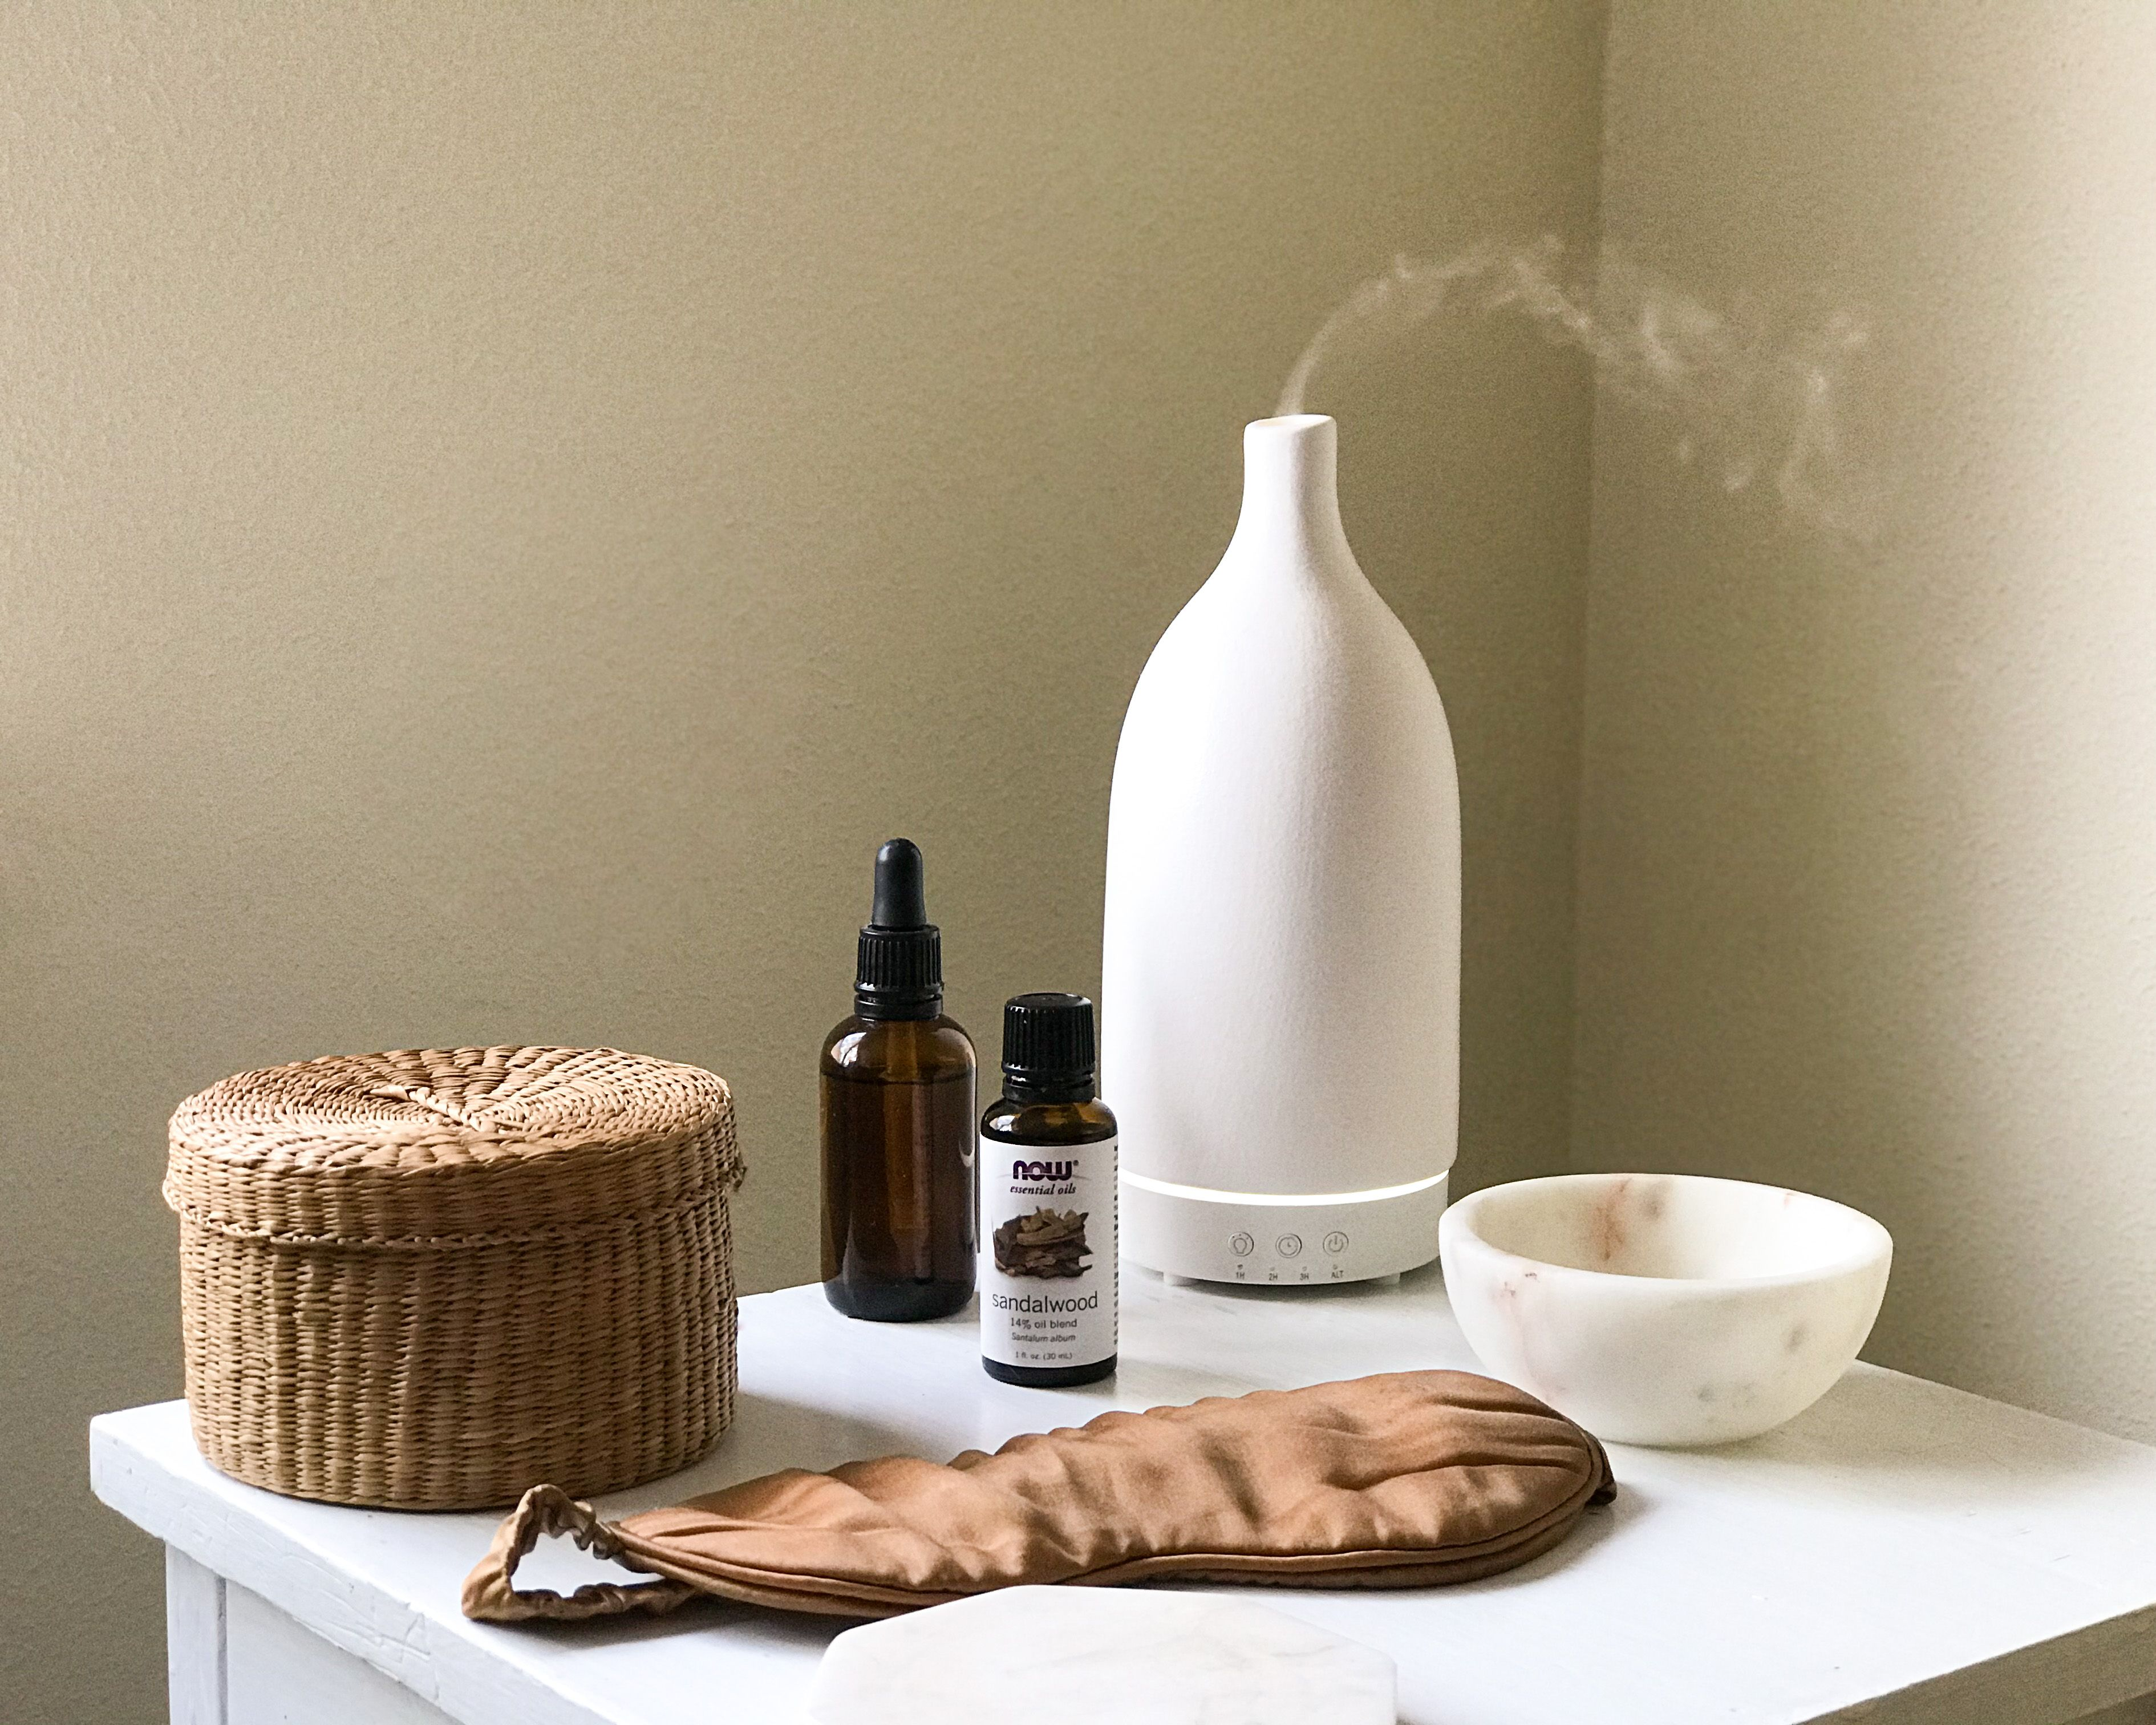 Self Care at Home in 2020 | Self care, Now foods, Essential oil shop